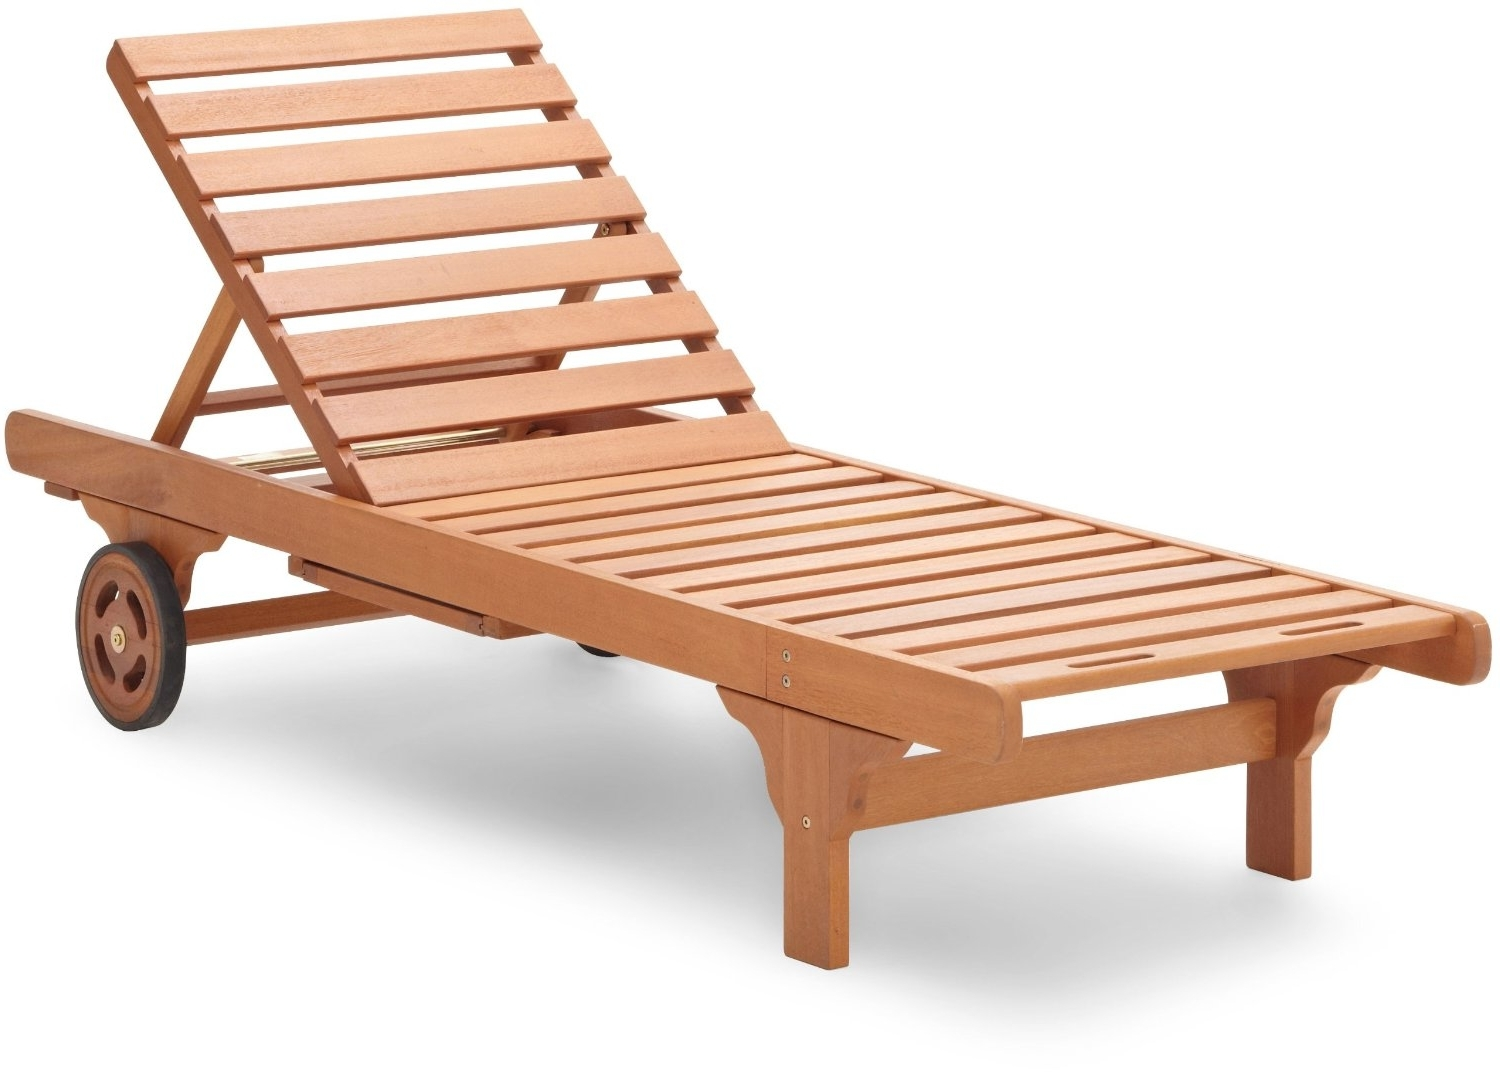 Wooden Outdoor Chaise Lounge Chairs With Regard To Preferred Wood Outdoor Chaise Lounge Chairs : Best Outdoor Chaise Lounge (View 2 of 15)